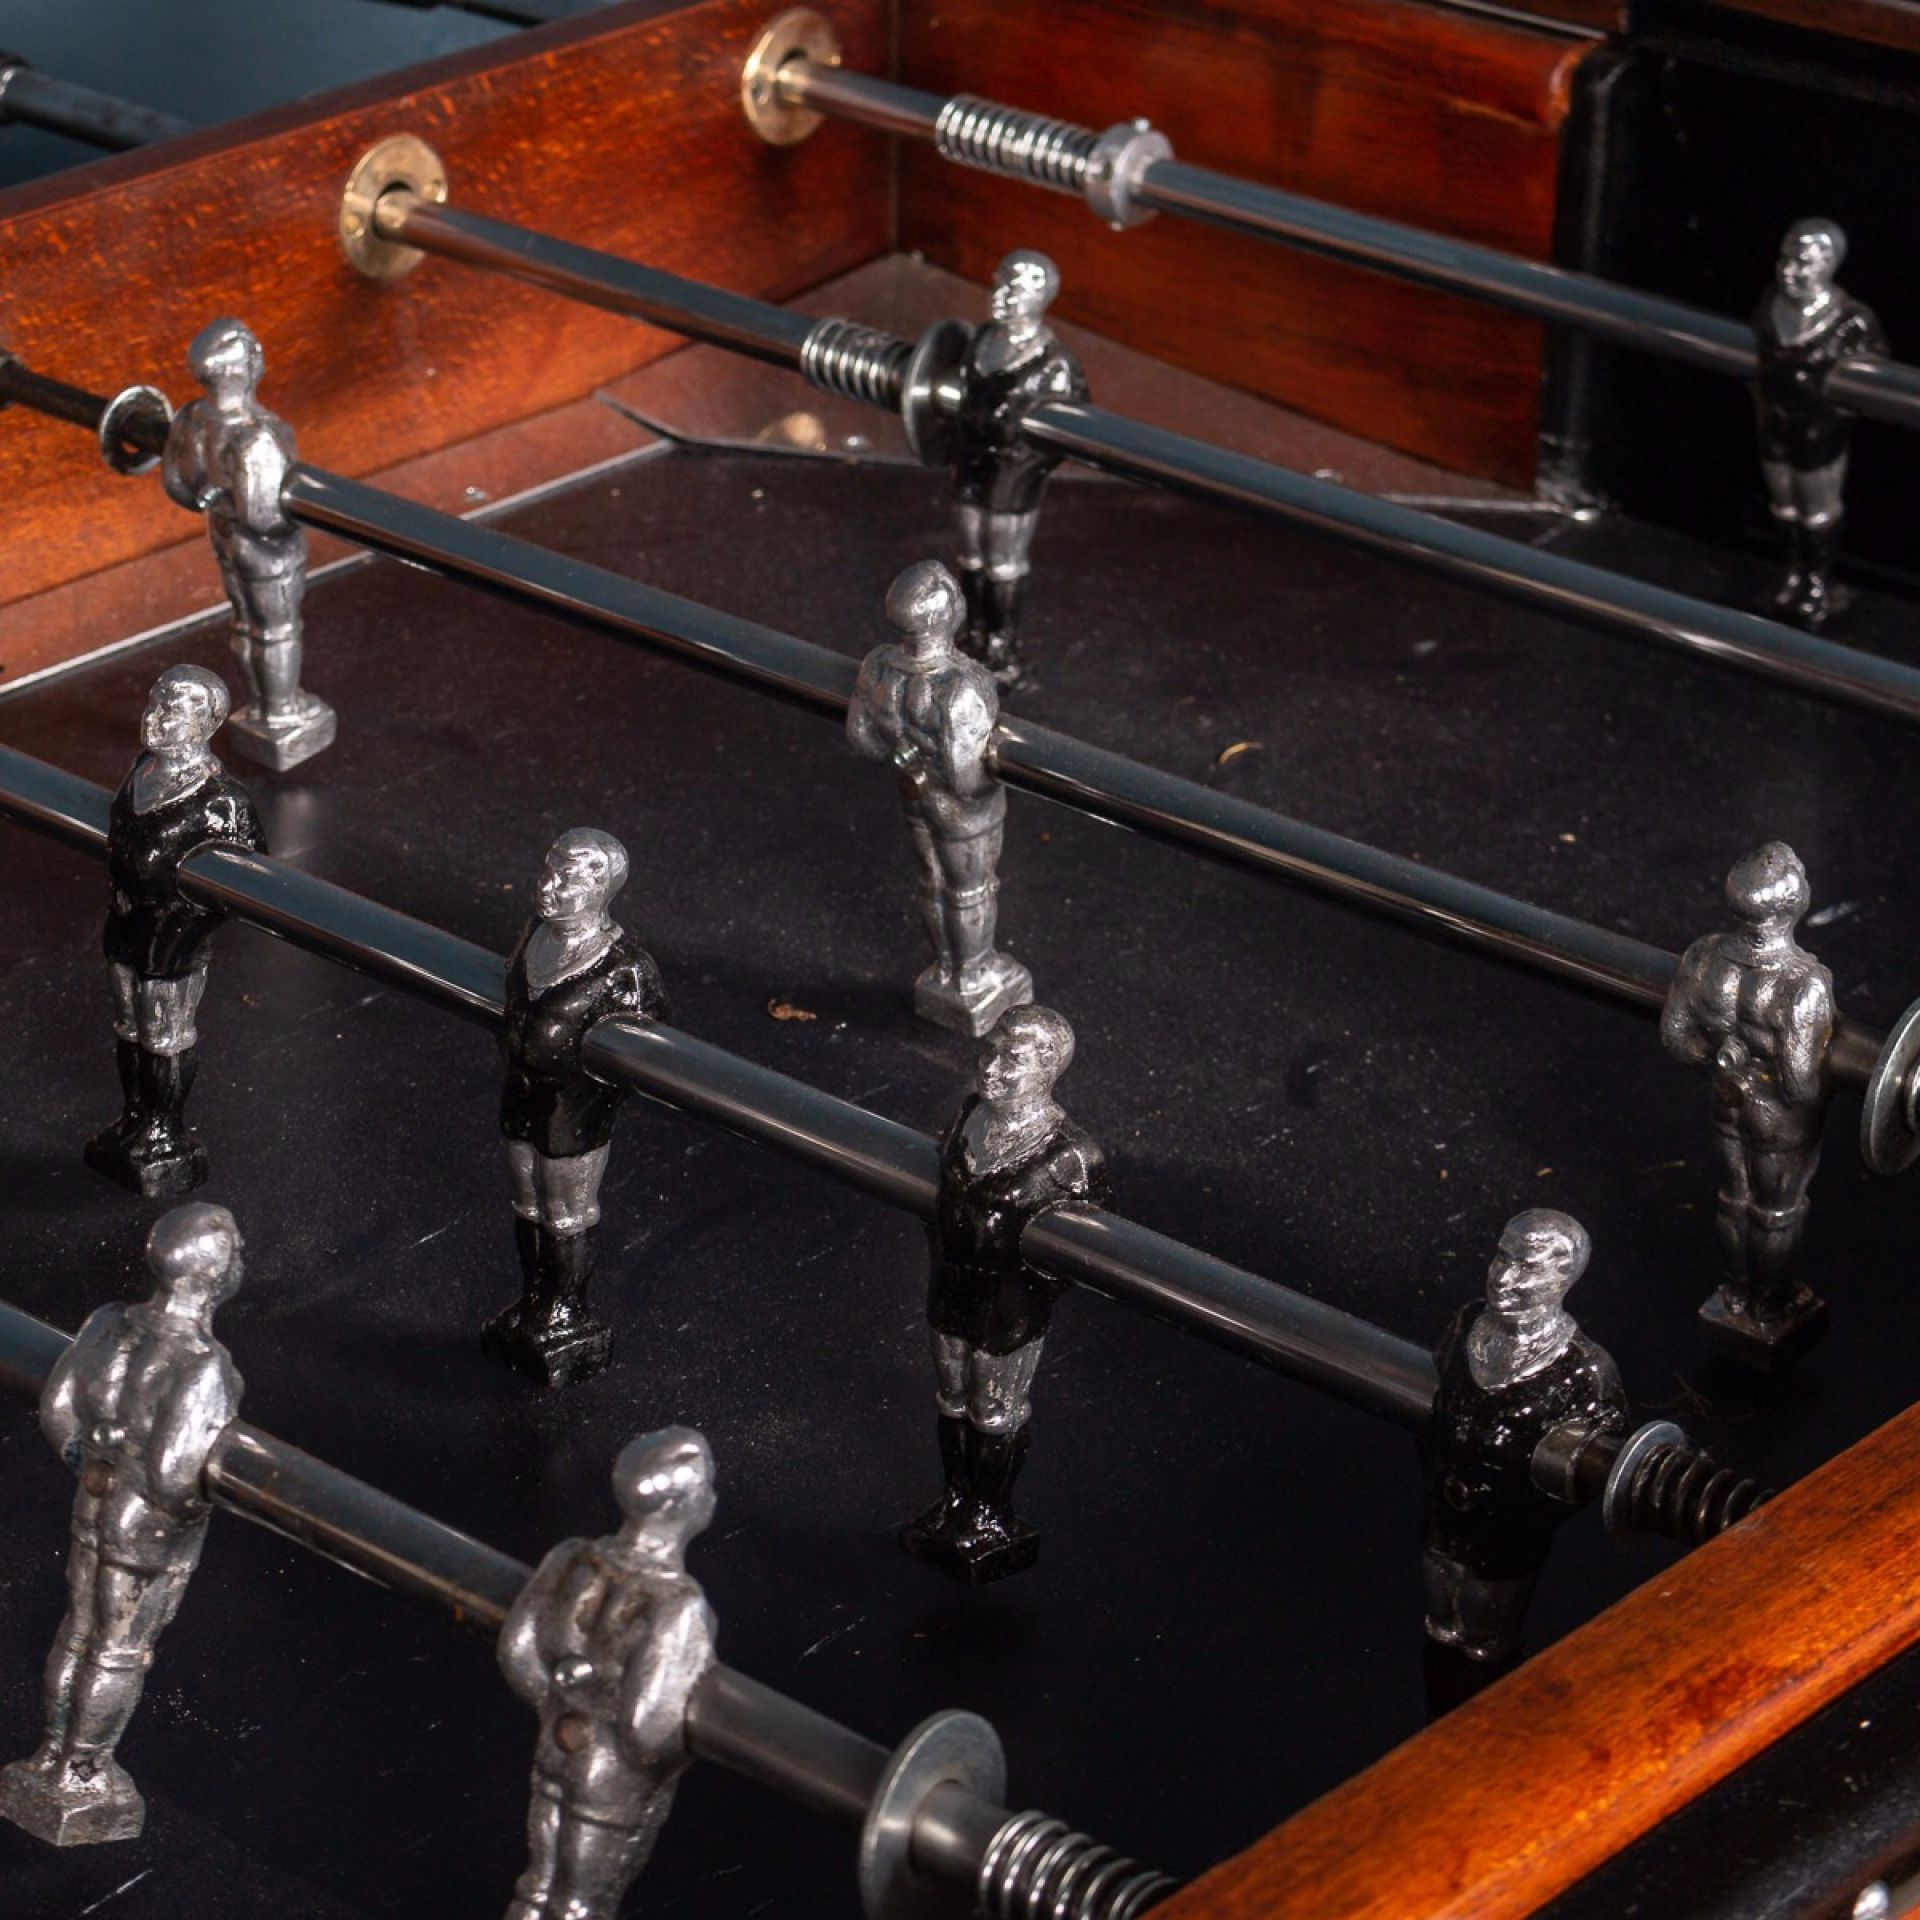 AMAZING MID 20TH CENTURY FRENCH TABLE FOOTBALL GAME